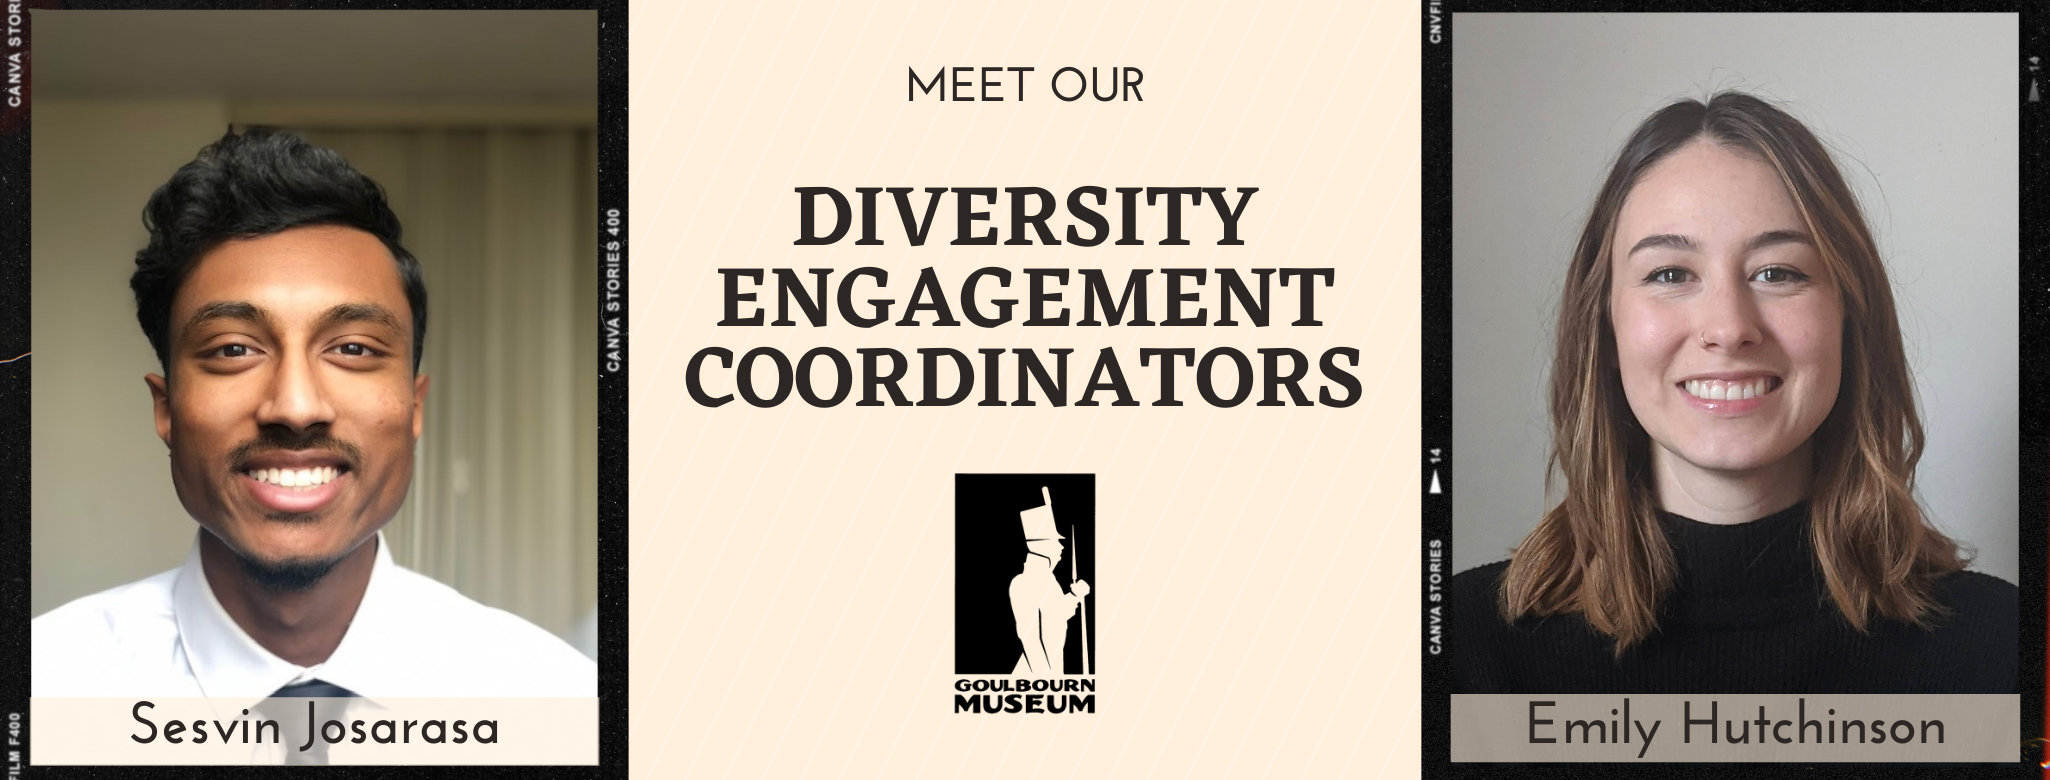 meet our diversity engagement coordinators